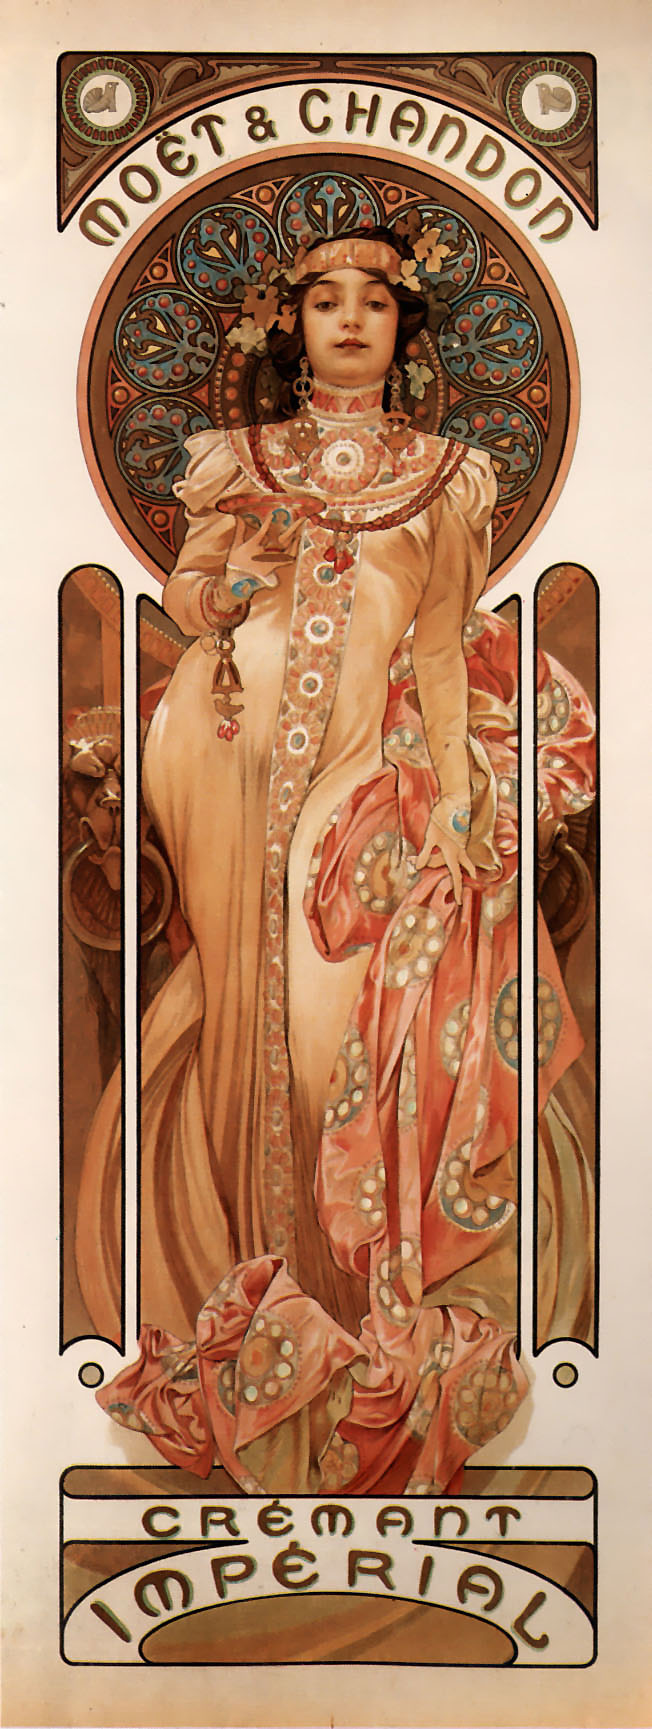 alfons mucha on pinterest alphonse mucha art nouveau and moet chandon. Black Bedroom Furniture Sets. Home Design Ideas